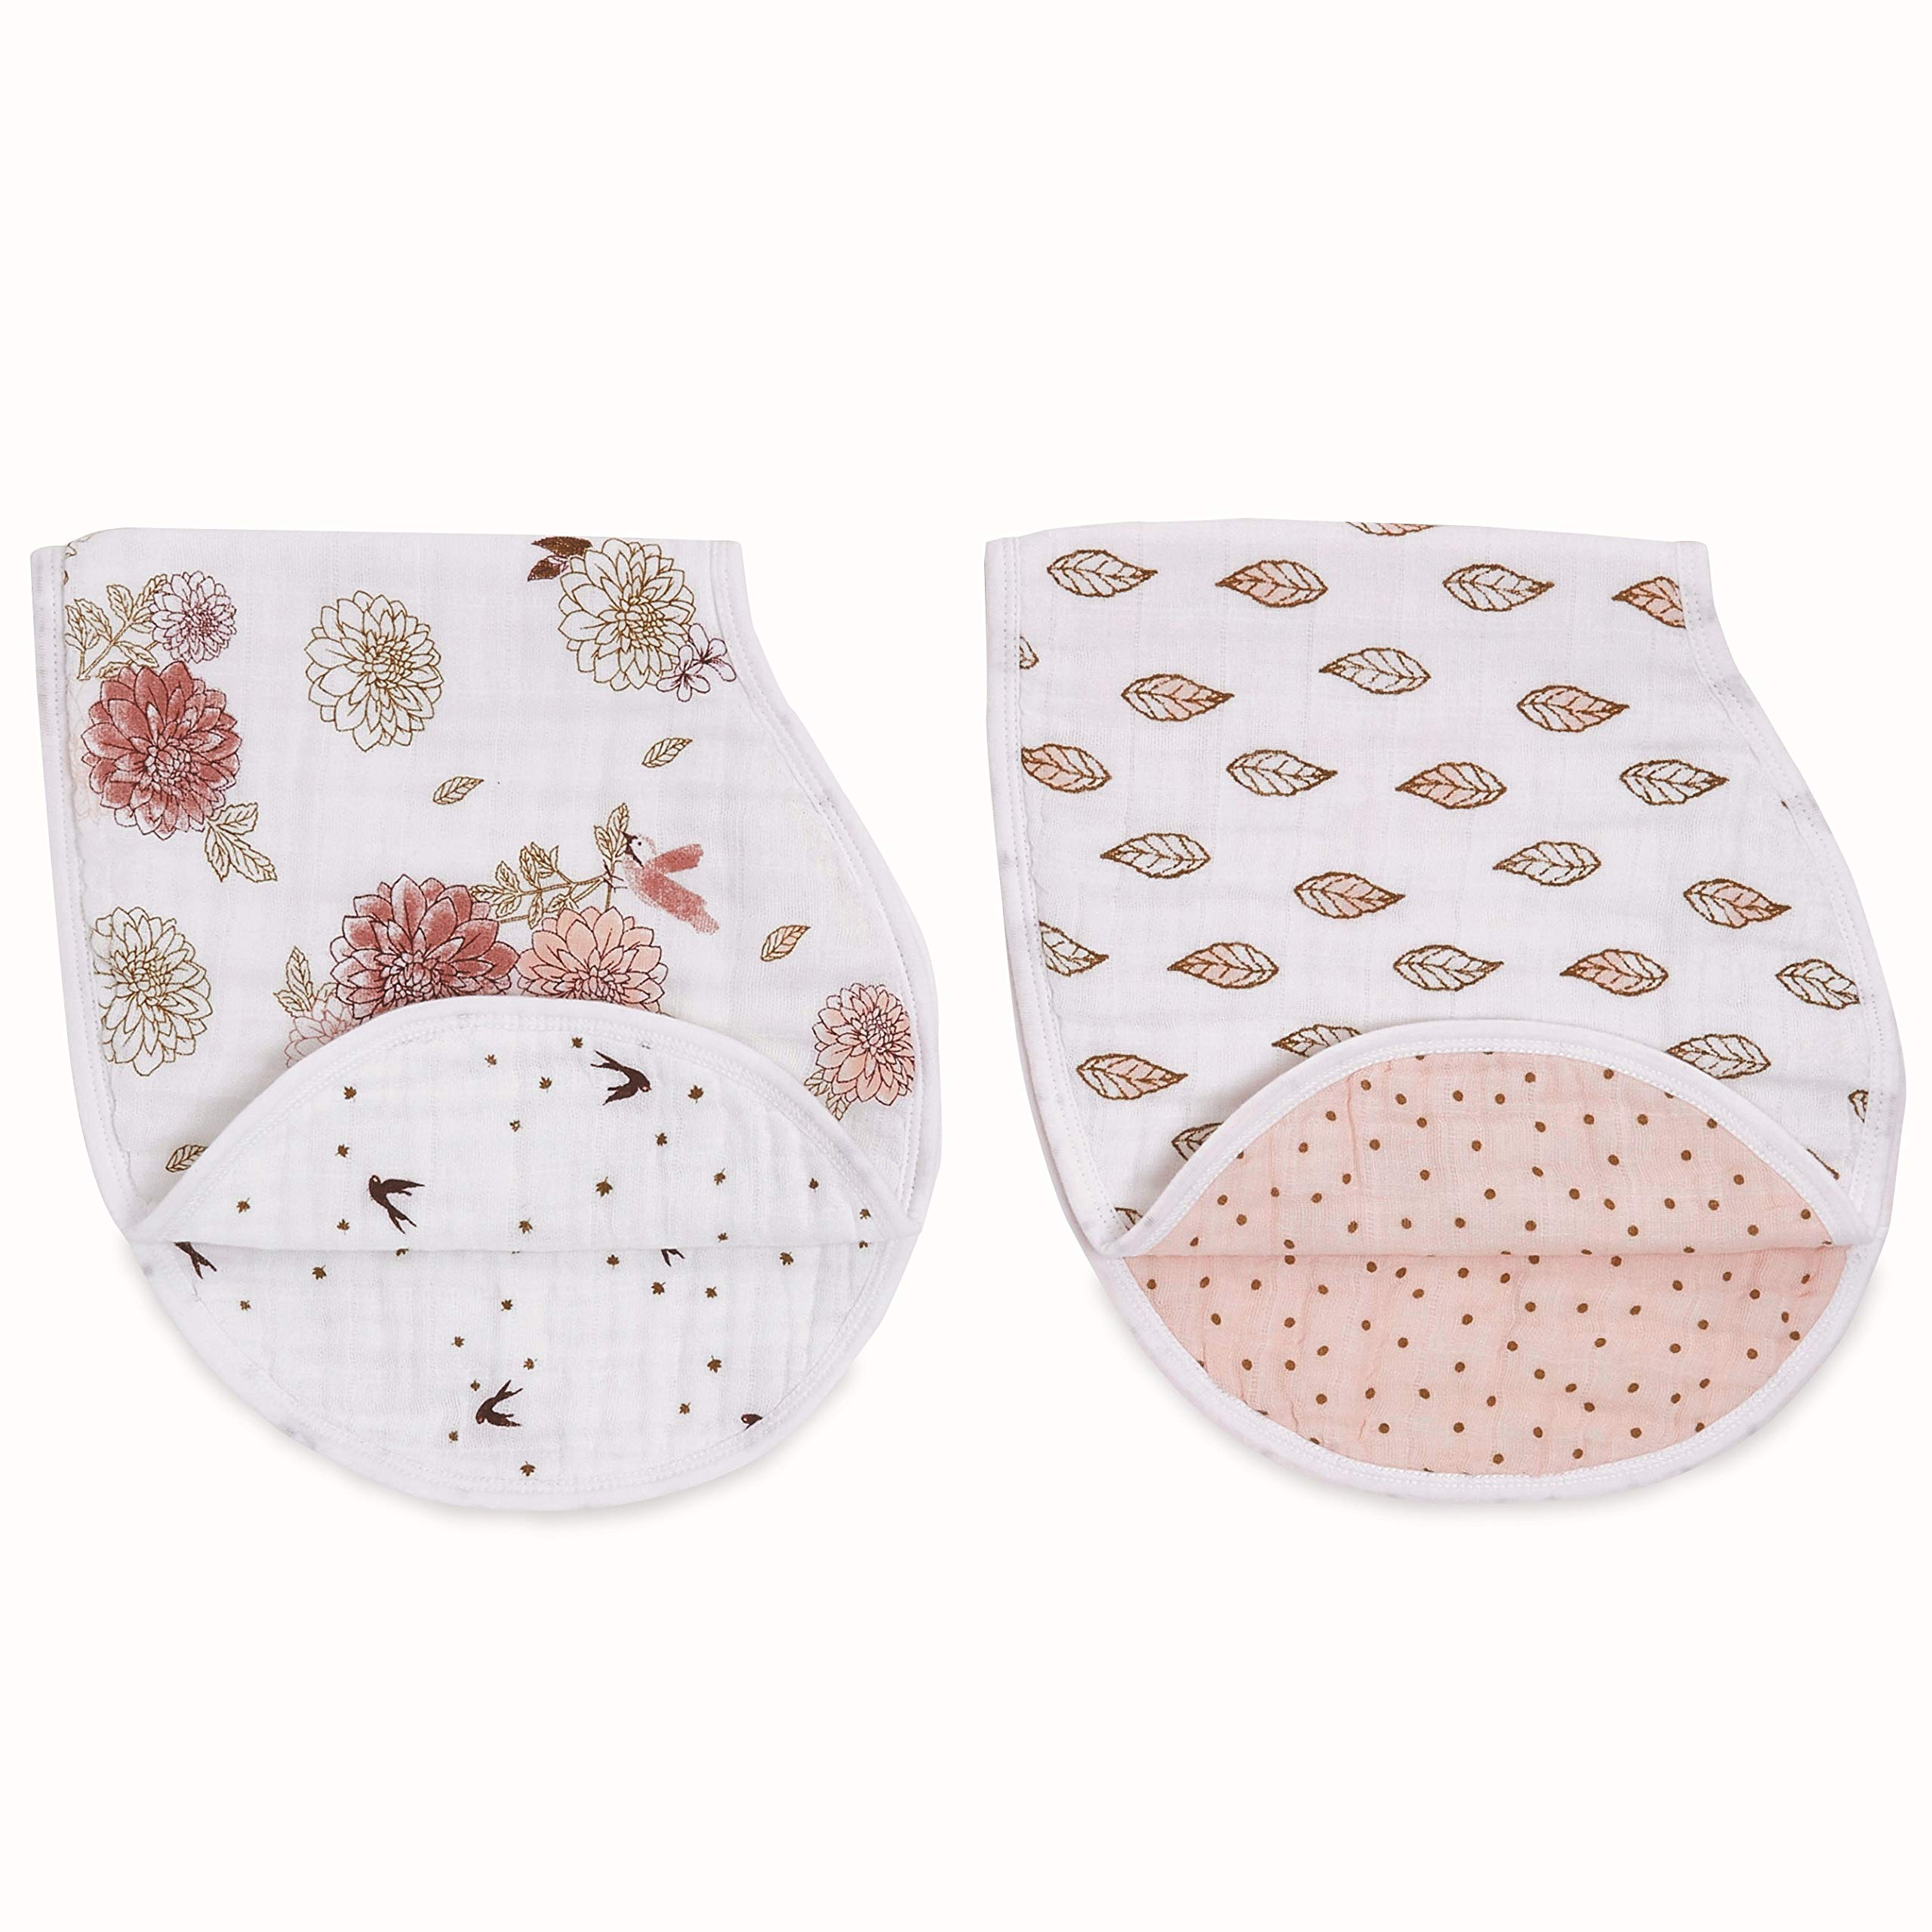 aden + anais Burpy Baby Bib, 100% Cotton Muslin, 4 Layer Multi Use Burping Cloth, Super Soft & Absorbent Burp Rag for Infants, Newborns and Toddlers, 2 Pack, Dahlias